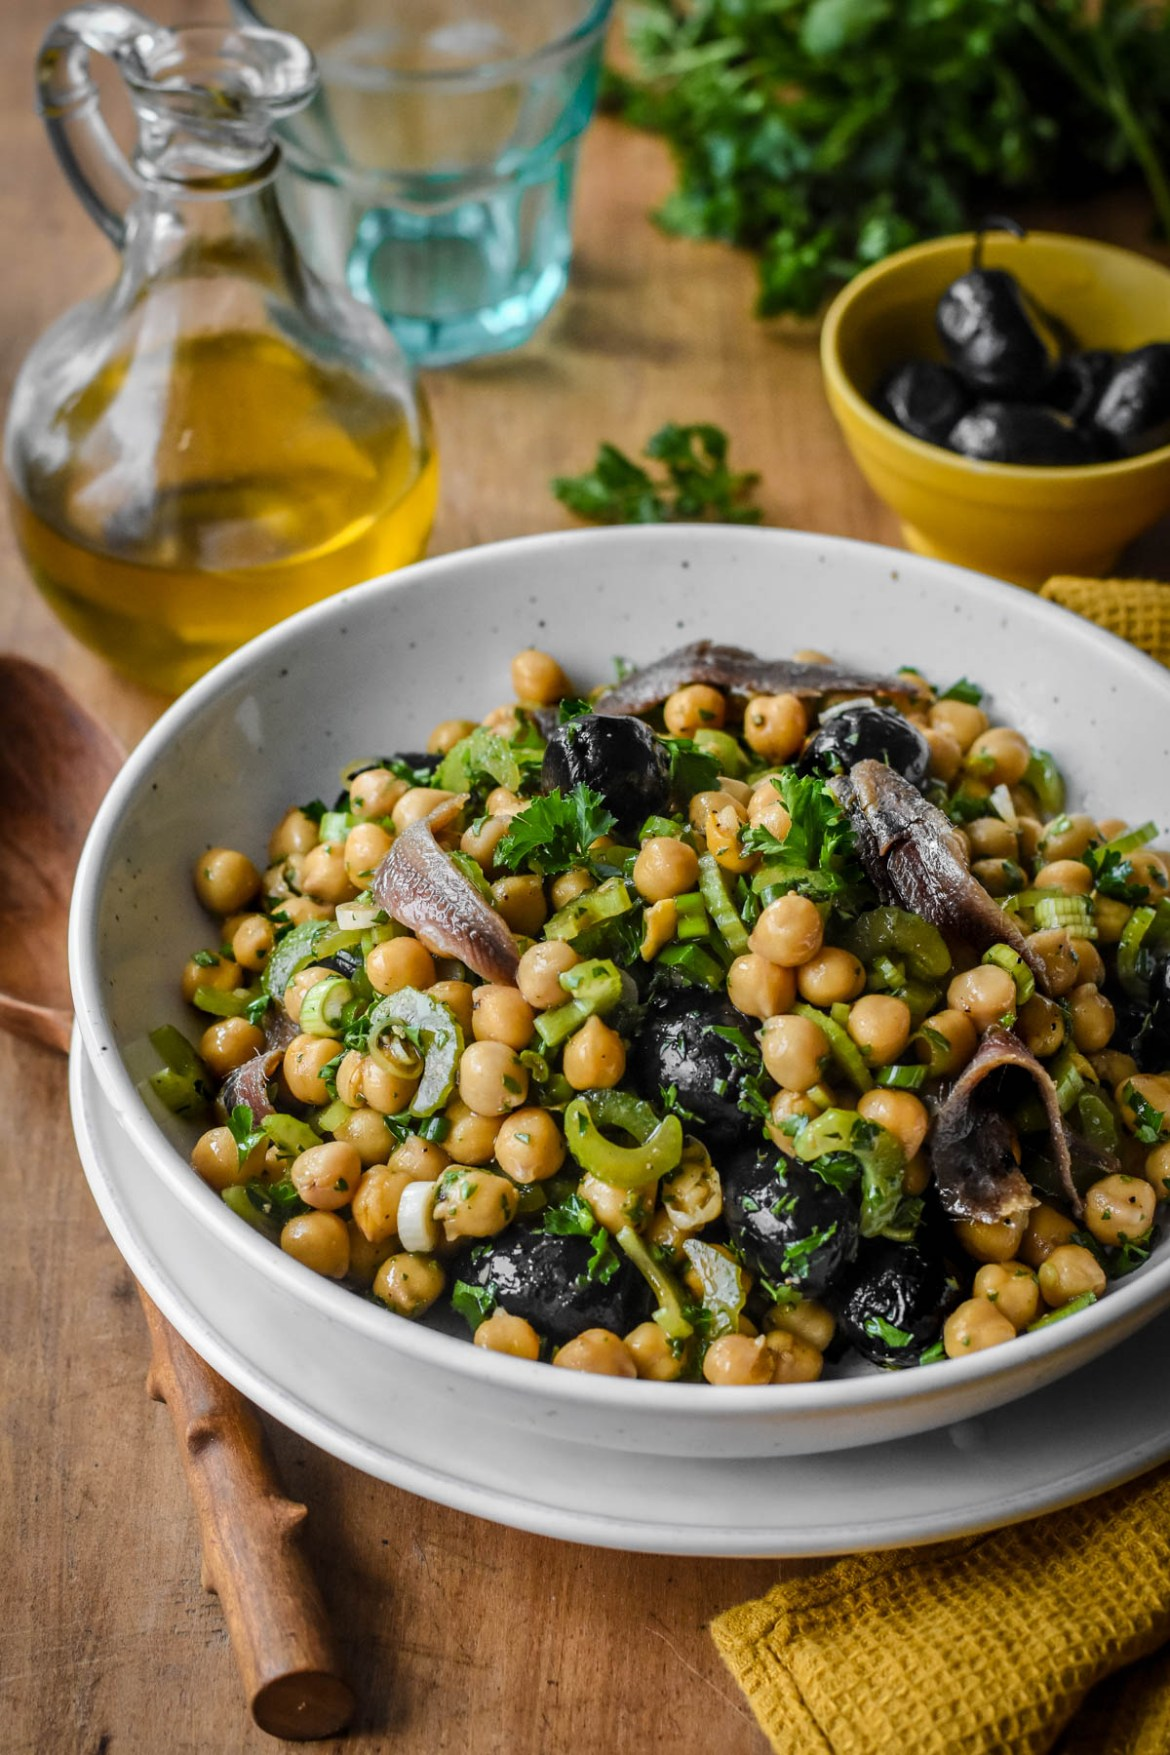 Provençal Chickpea Salad with Olives, Anchovies and Celery